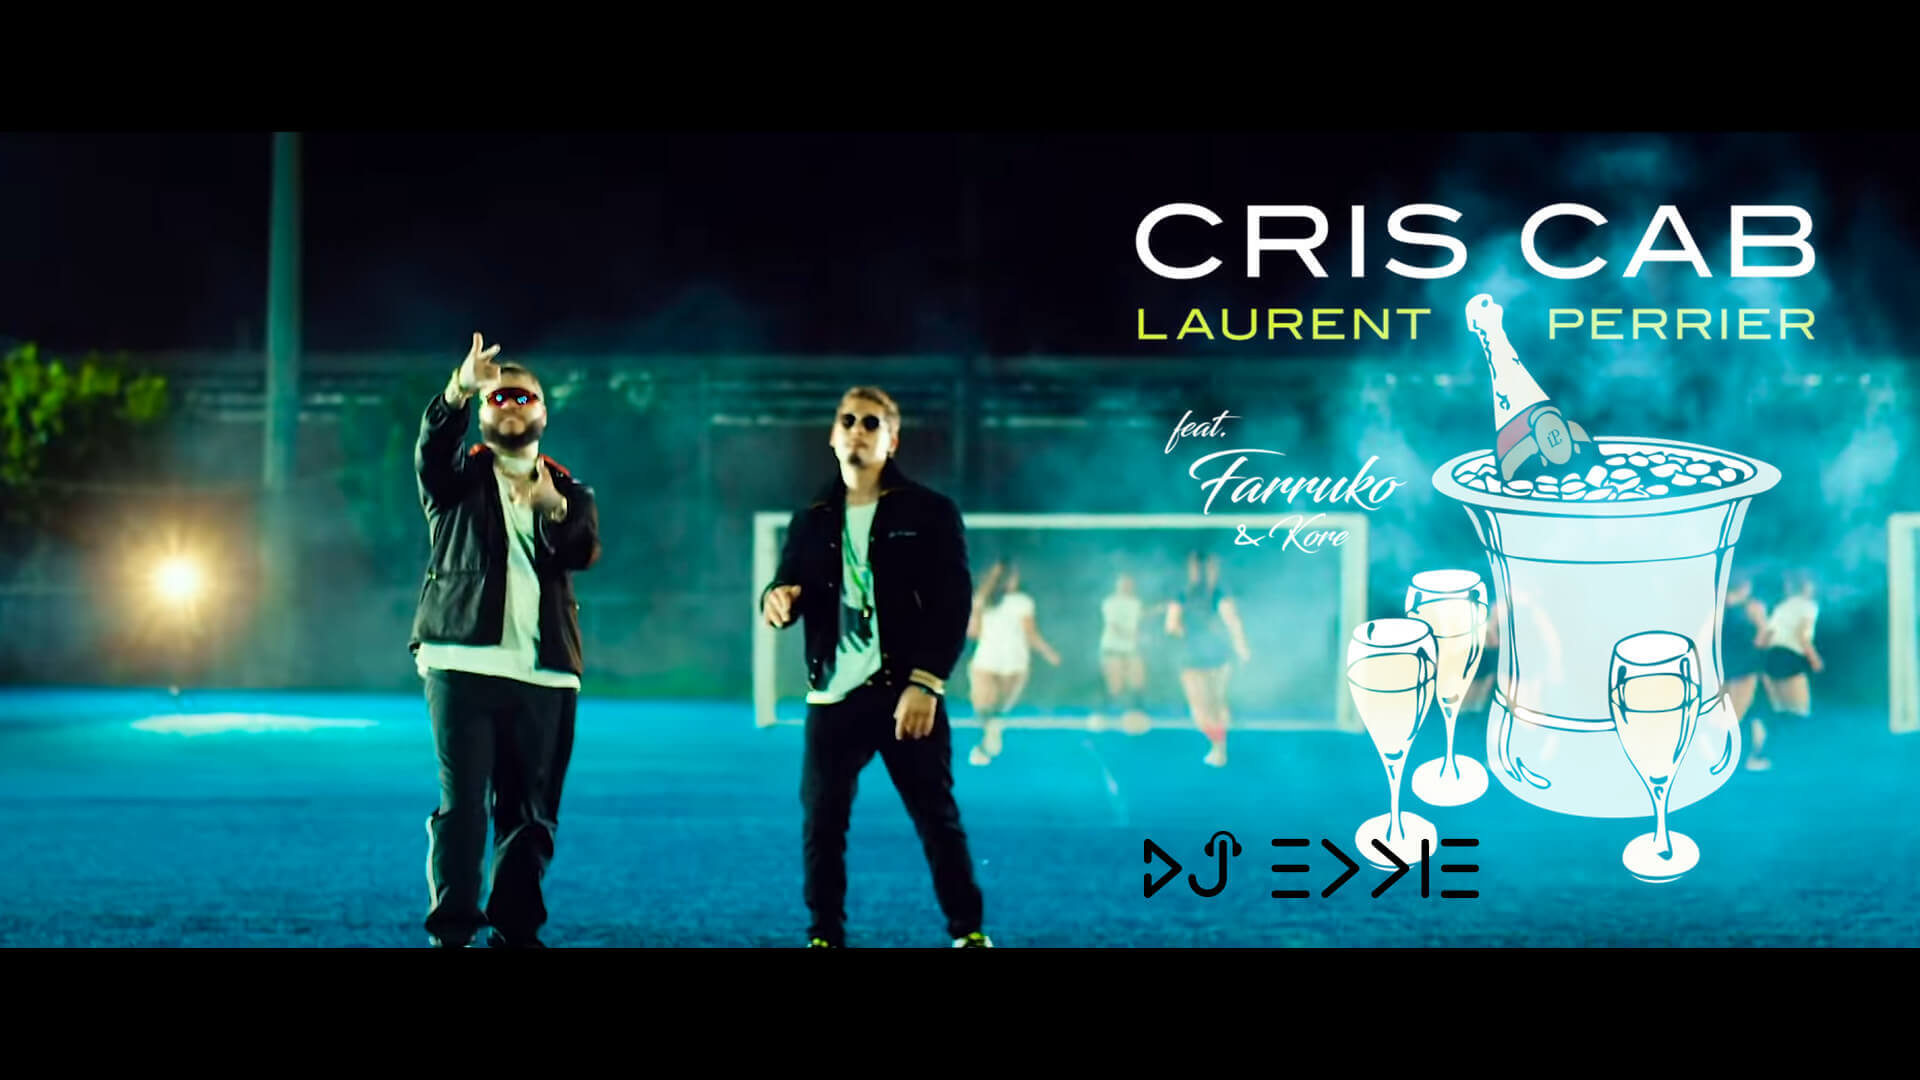 Cris Cab ft. Farruko, Kore - Laurent Perrier